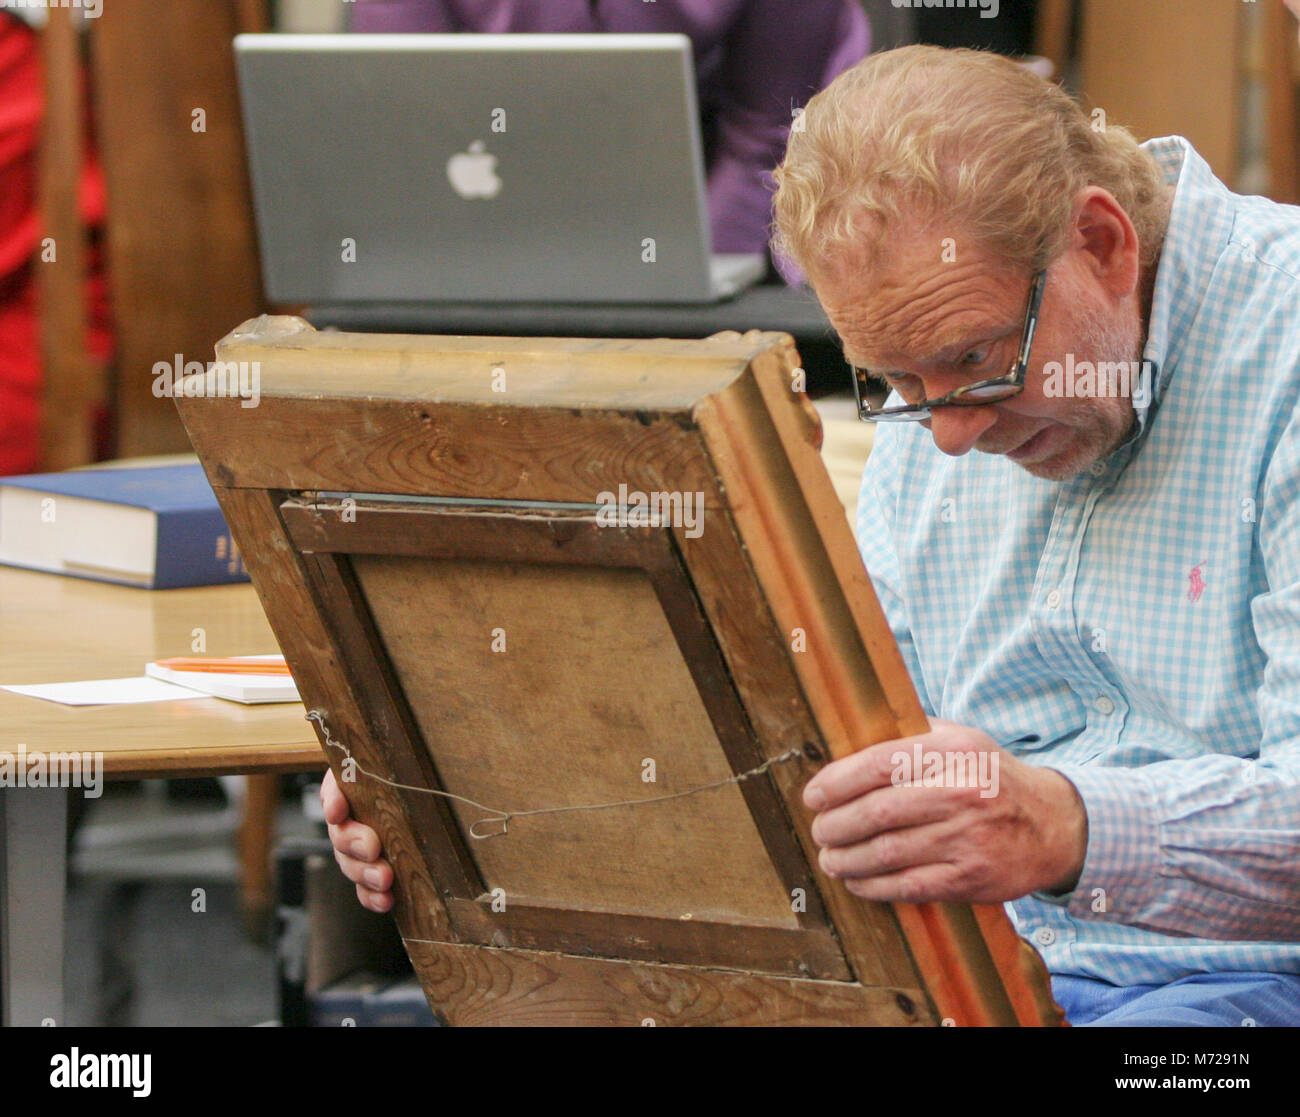 ART EXPERT studies the painting for evaluation 2014 - Stock Image